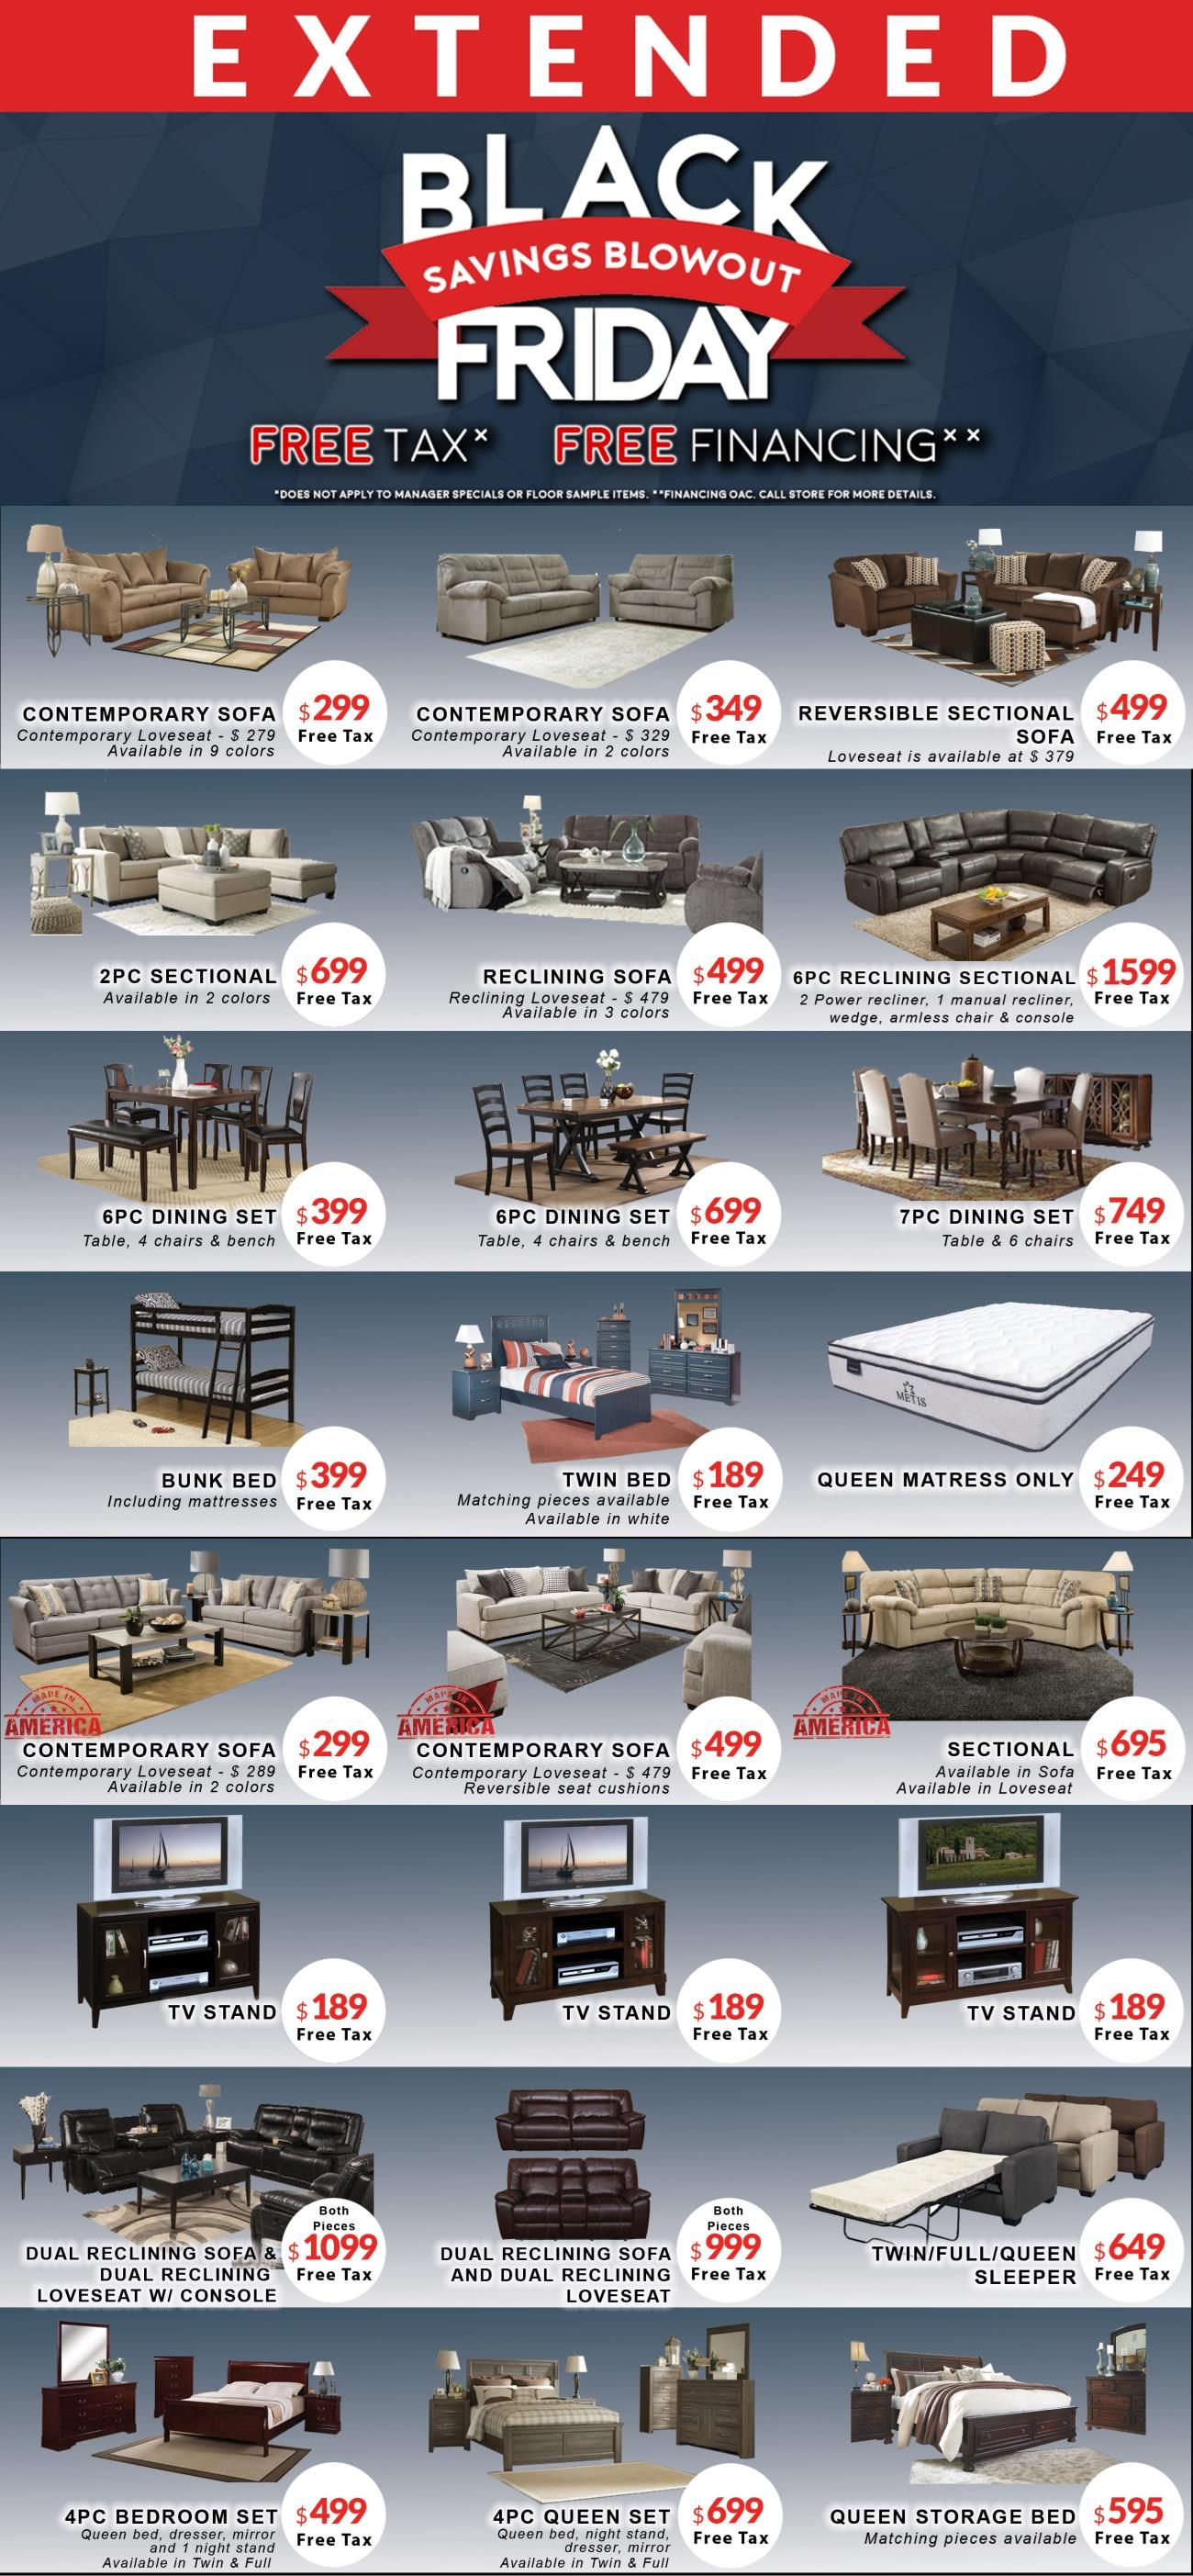 Shop Michaelu0027s Furniture Warehouse For The Best Sales And Deals On Furniture  In The San Fernando U0026 Los Angeles Area.